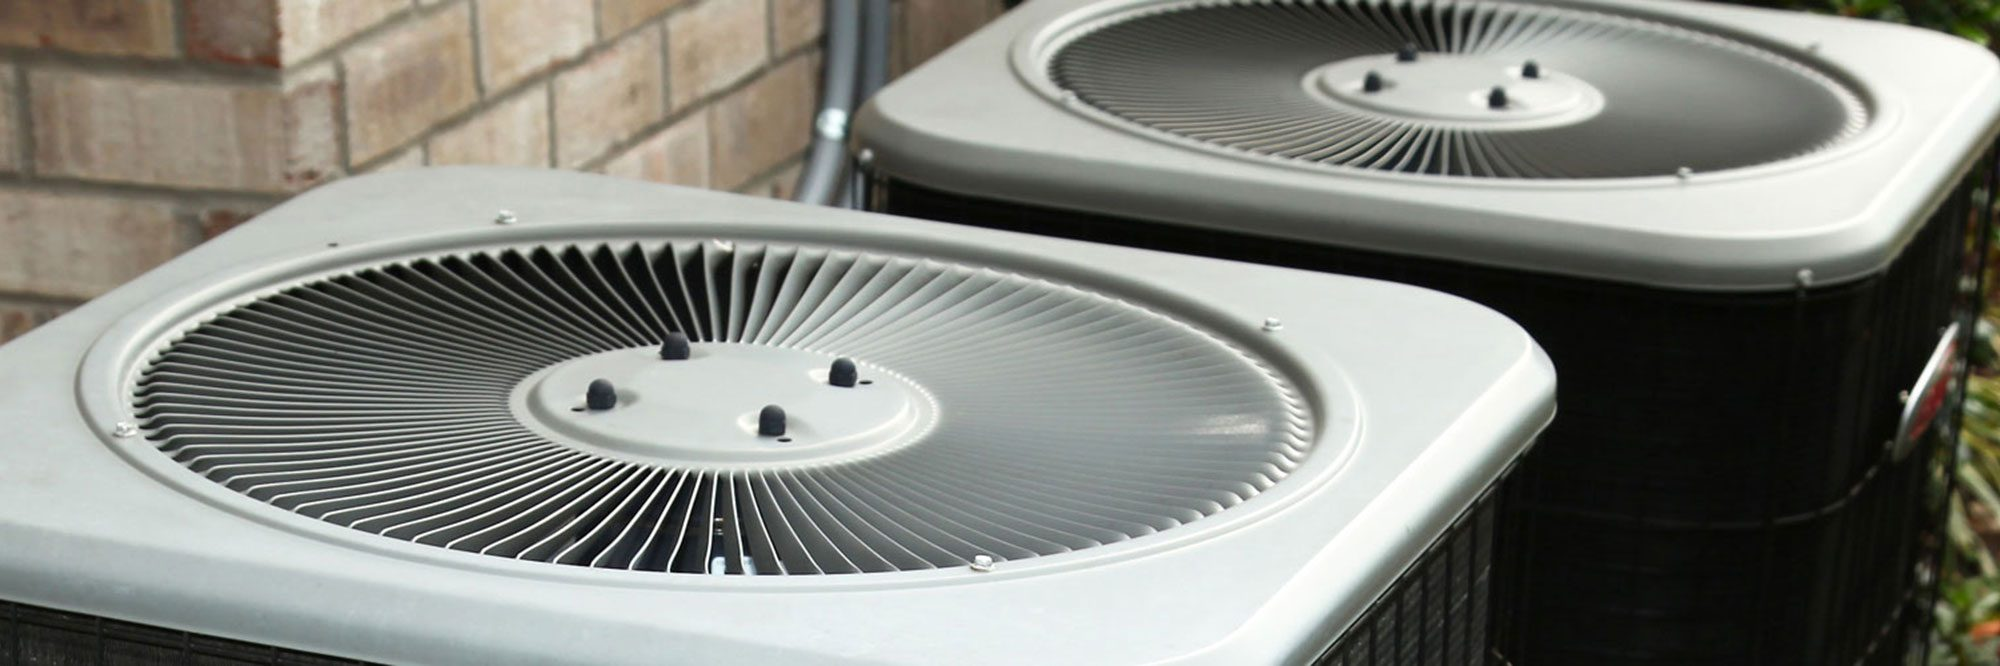 Heating Systems | HVAC in Lakeland FL